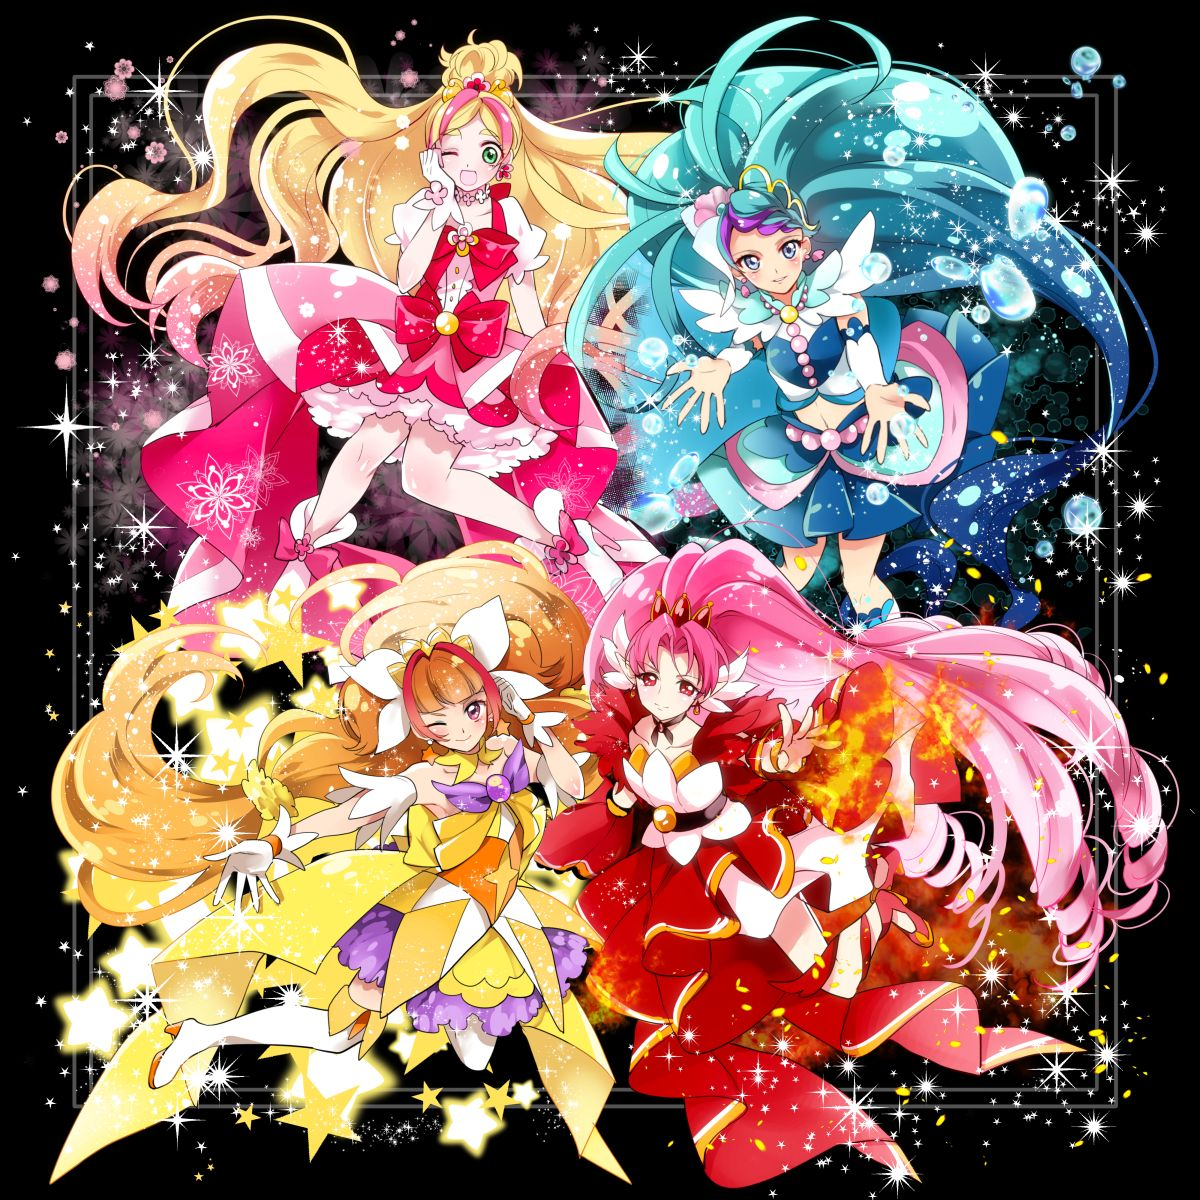 I think this anime is Princess Precure?? I don't know